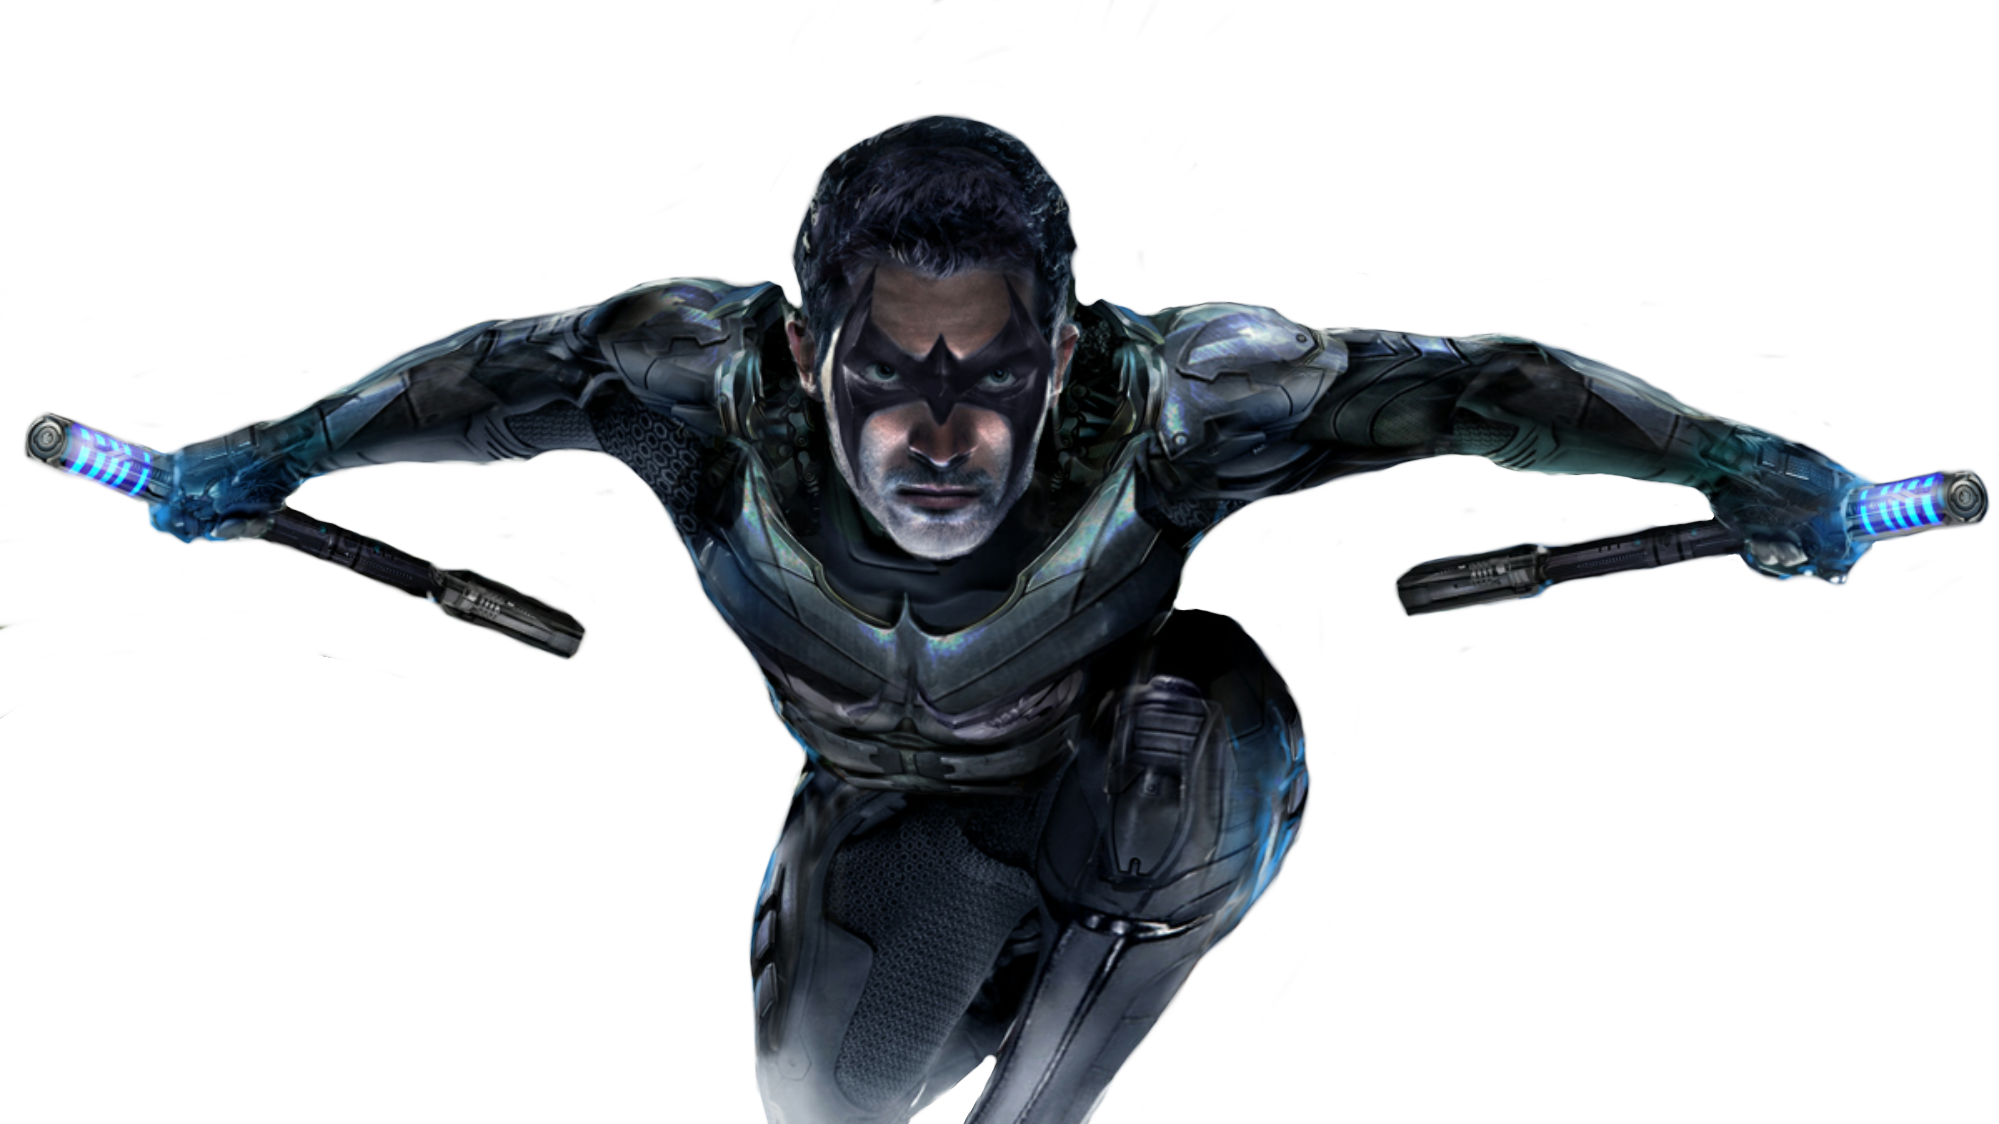 Nightwing png. High quality image arts